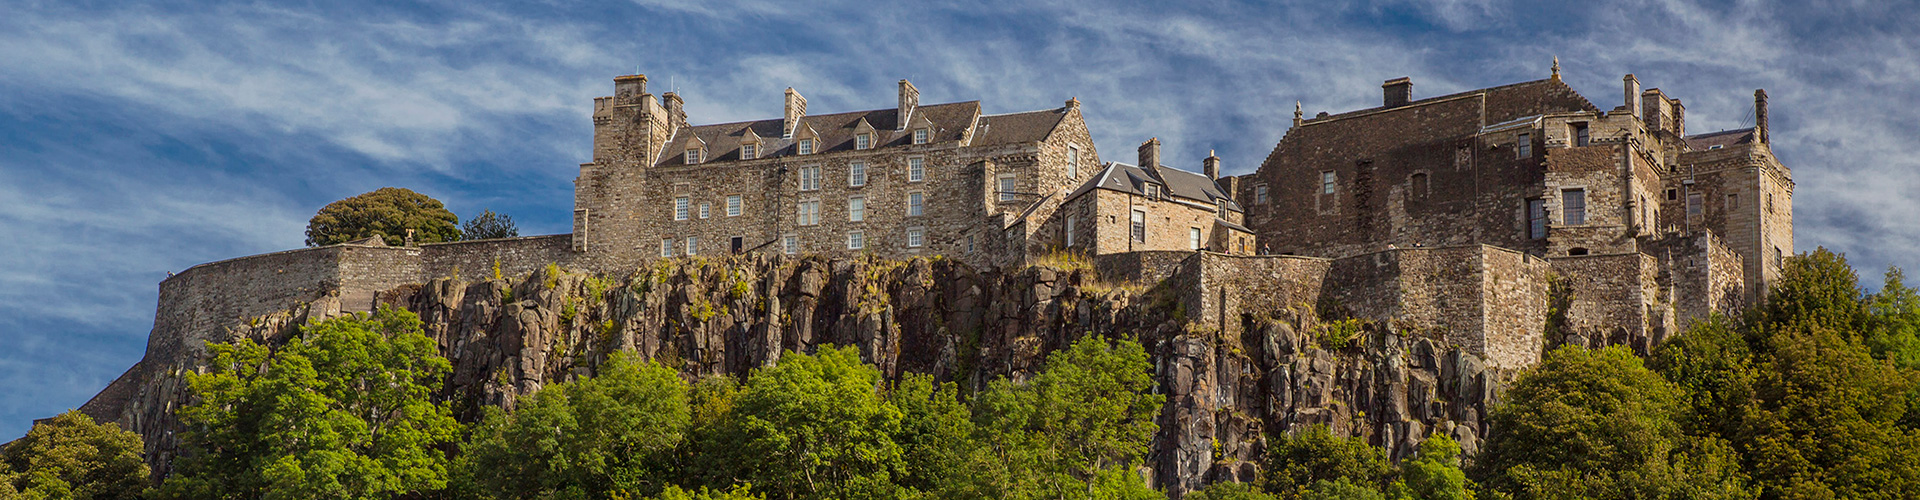 Stirling hotel - castle